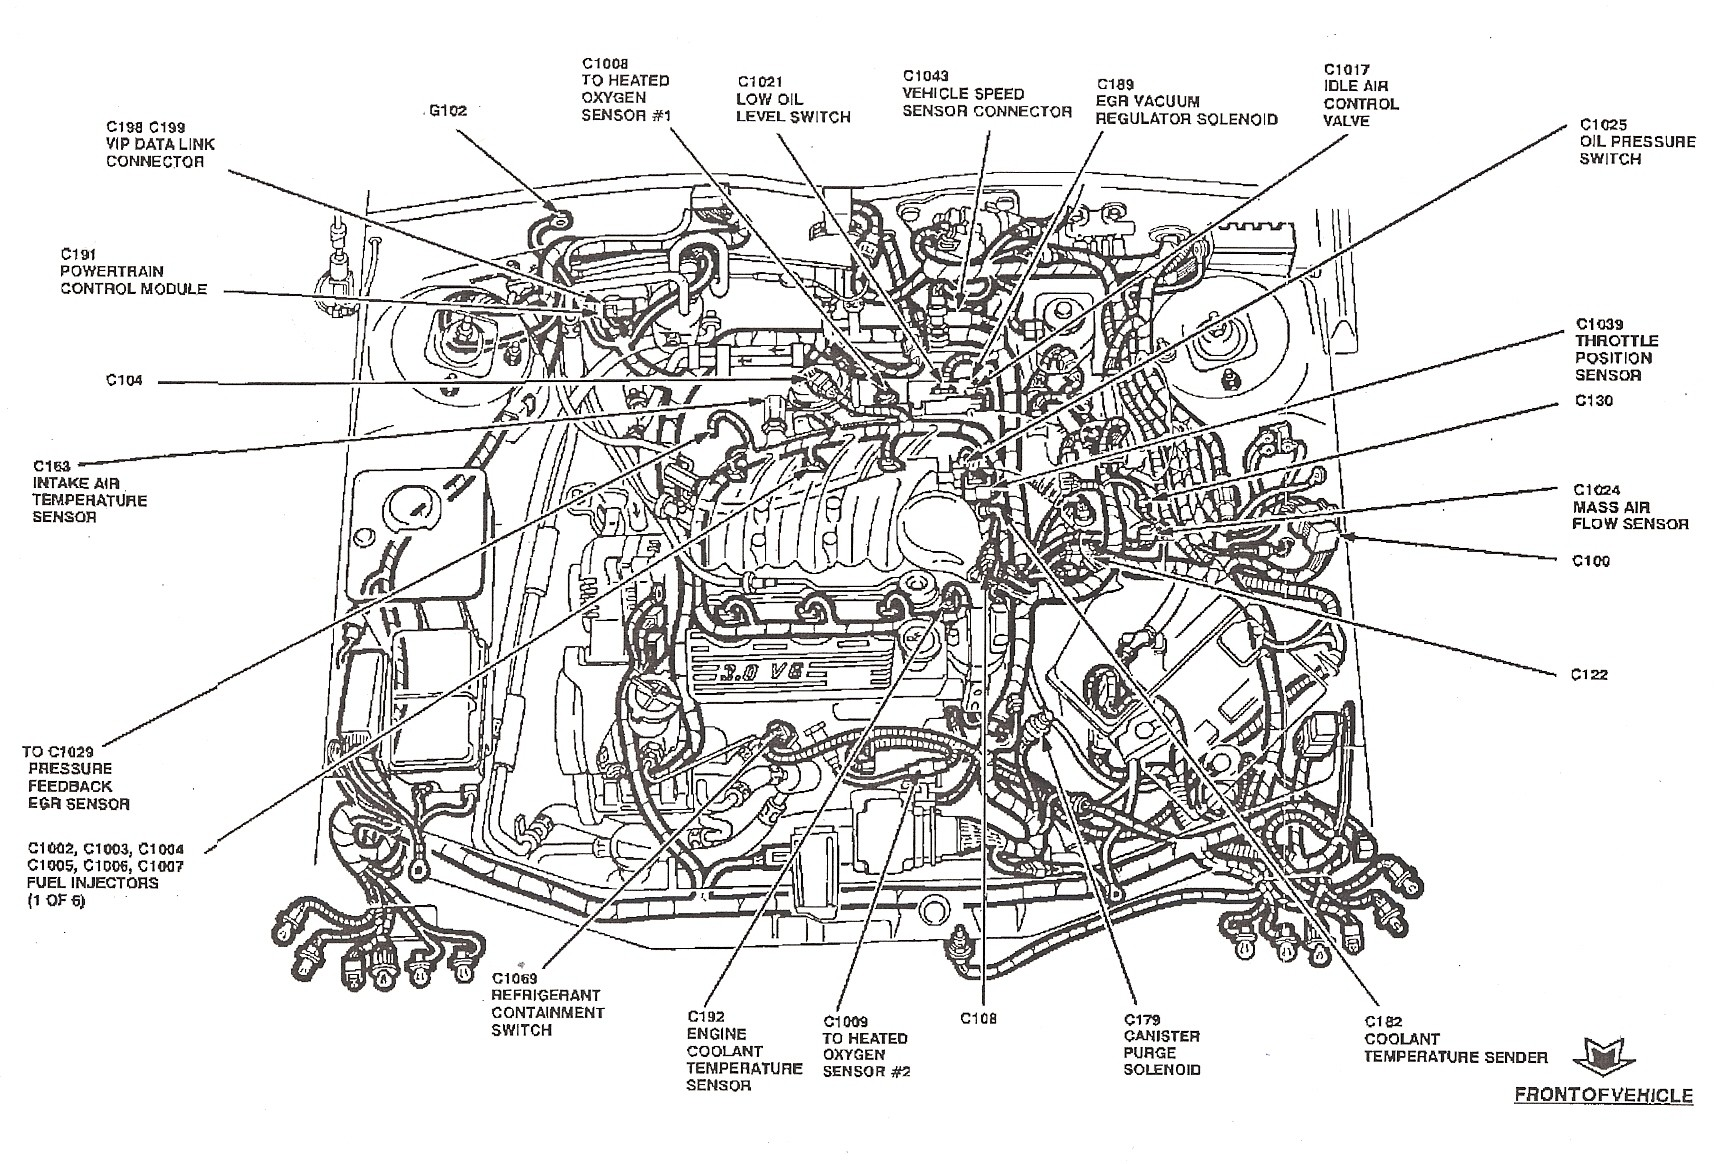 Ford Escape V6 Engine Diagram